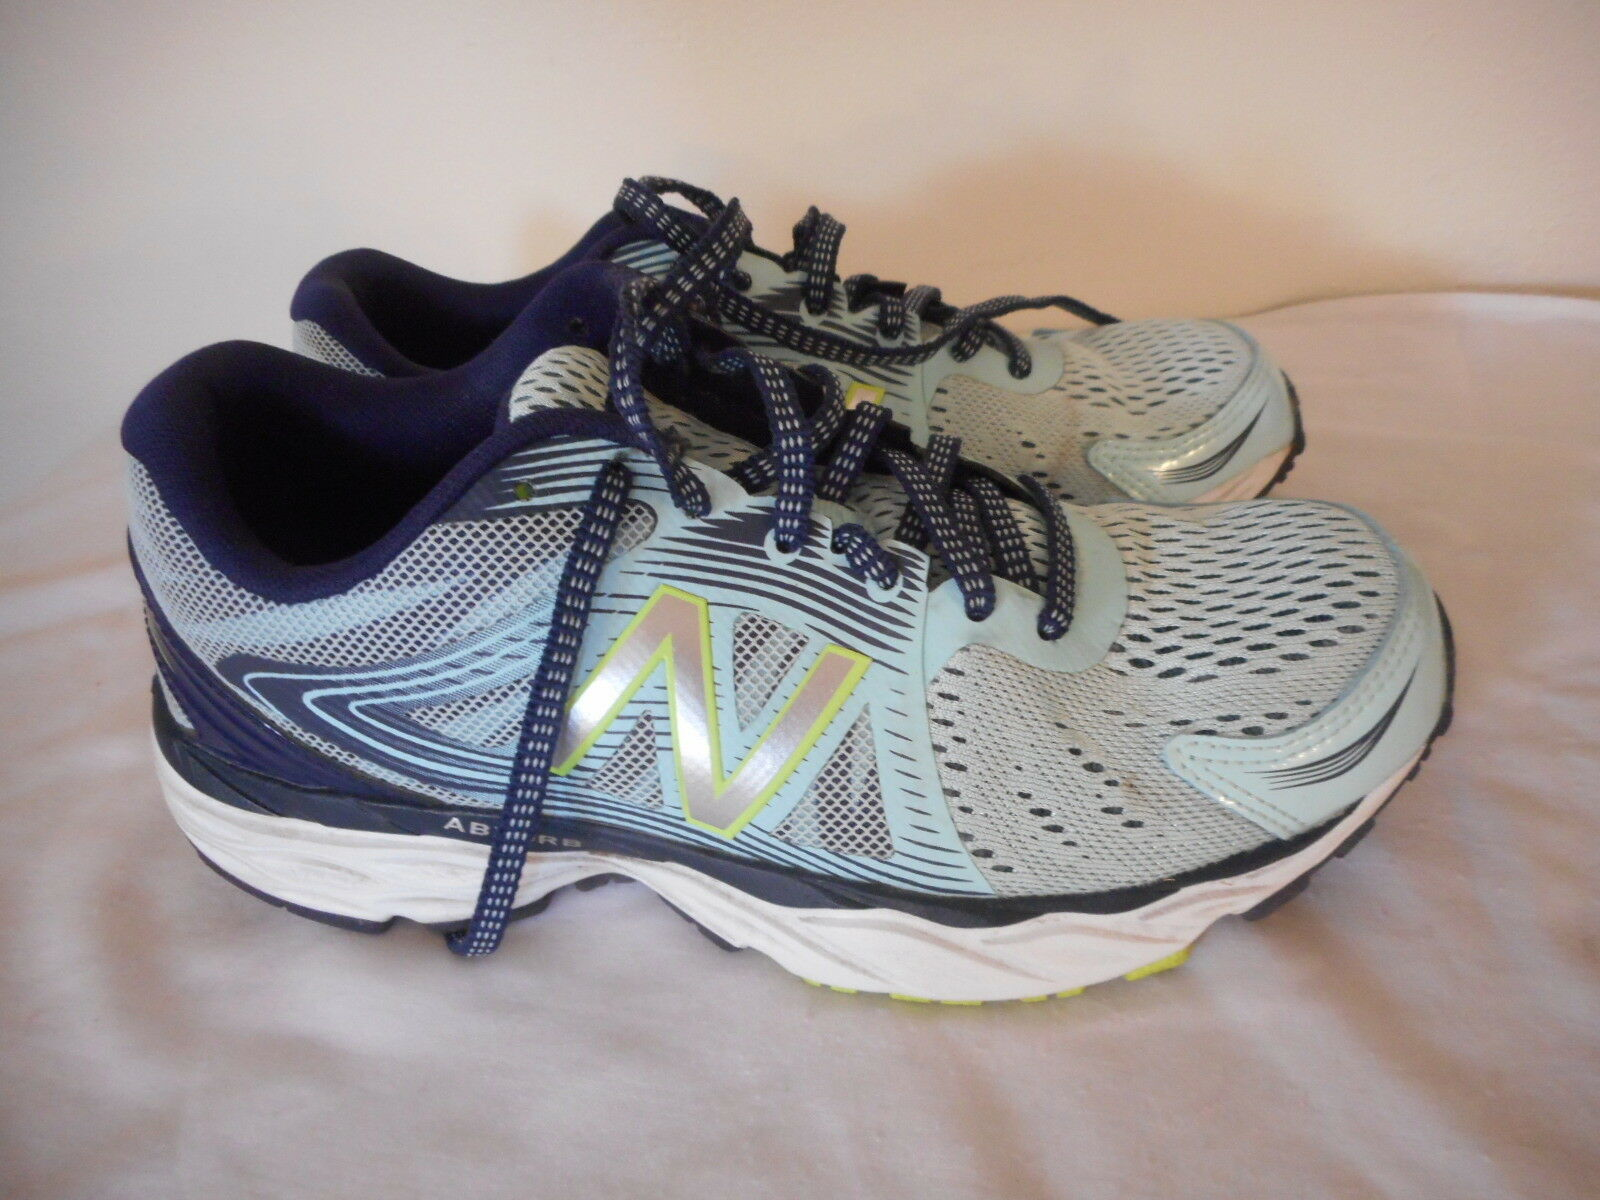 New Balance Esponsef 2.0 Womens Blue Green Athletic Shoes Sneakers Size 7